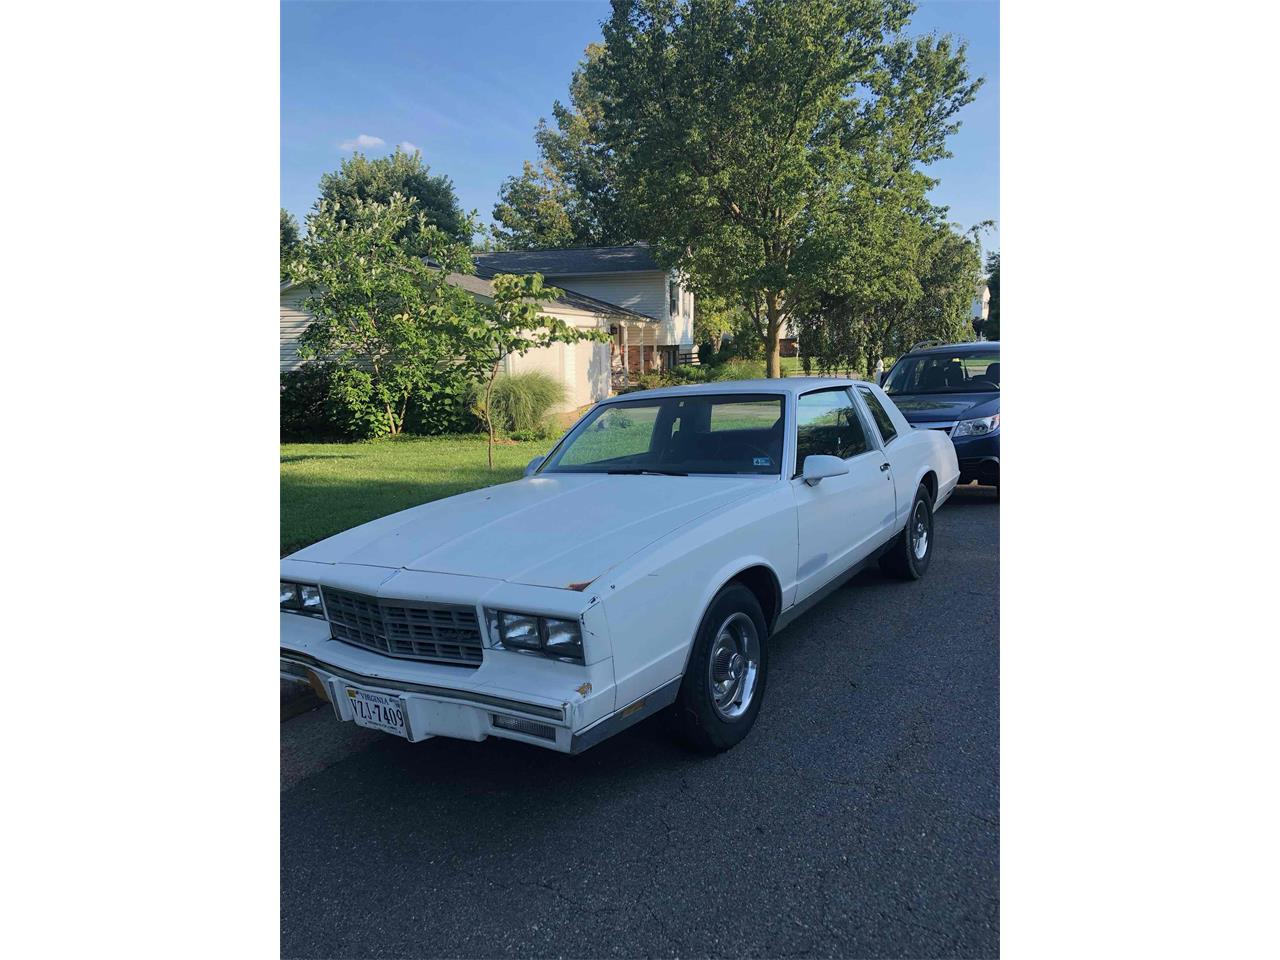 1986 Chevrolet Monte Carlo (CC-1233955) for sale in Putcellville, Virginia